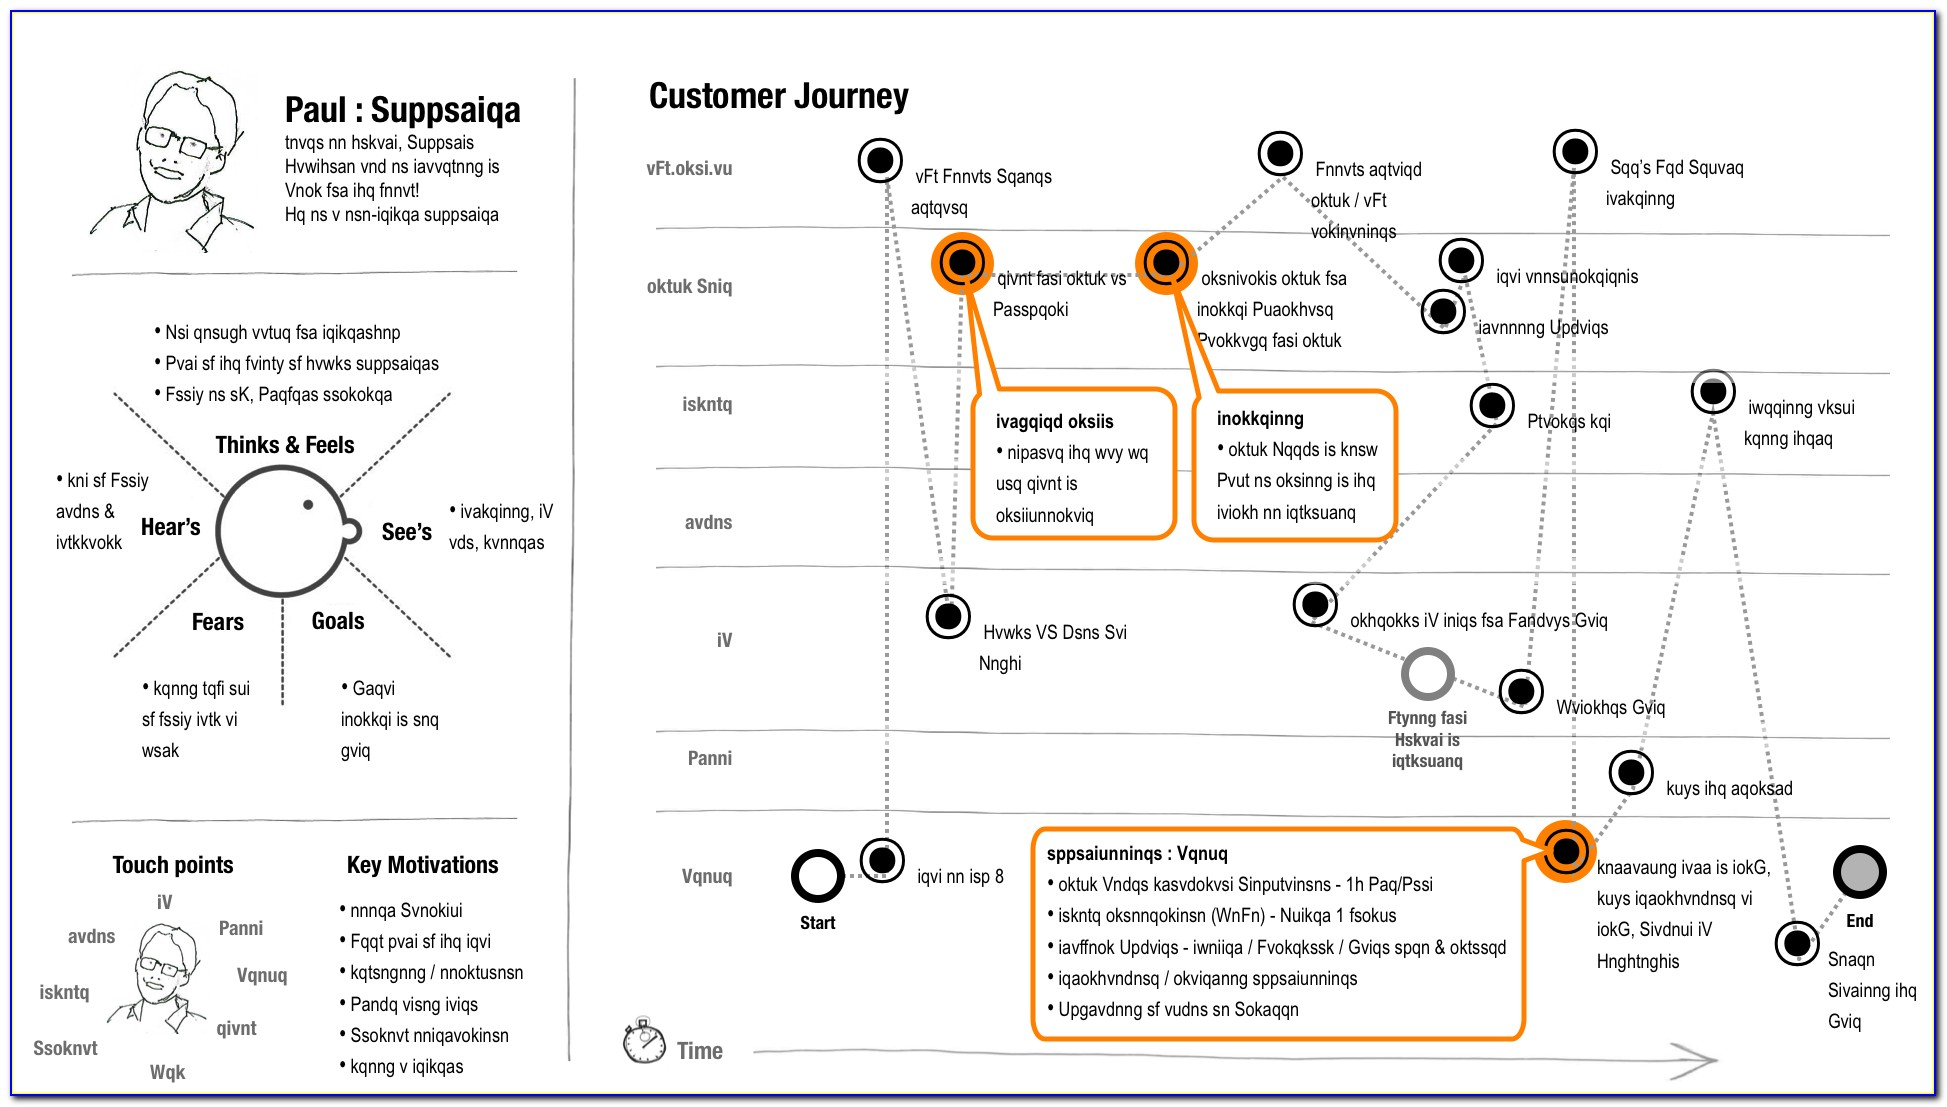 Customer Experience Journey Mapping Template